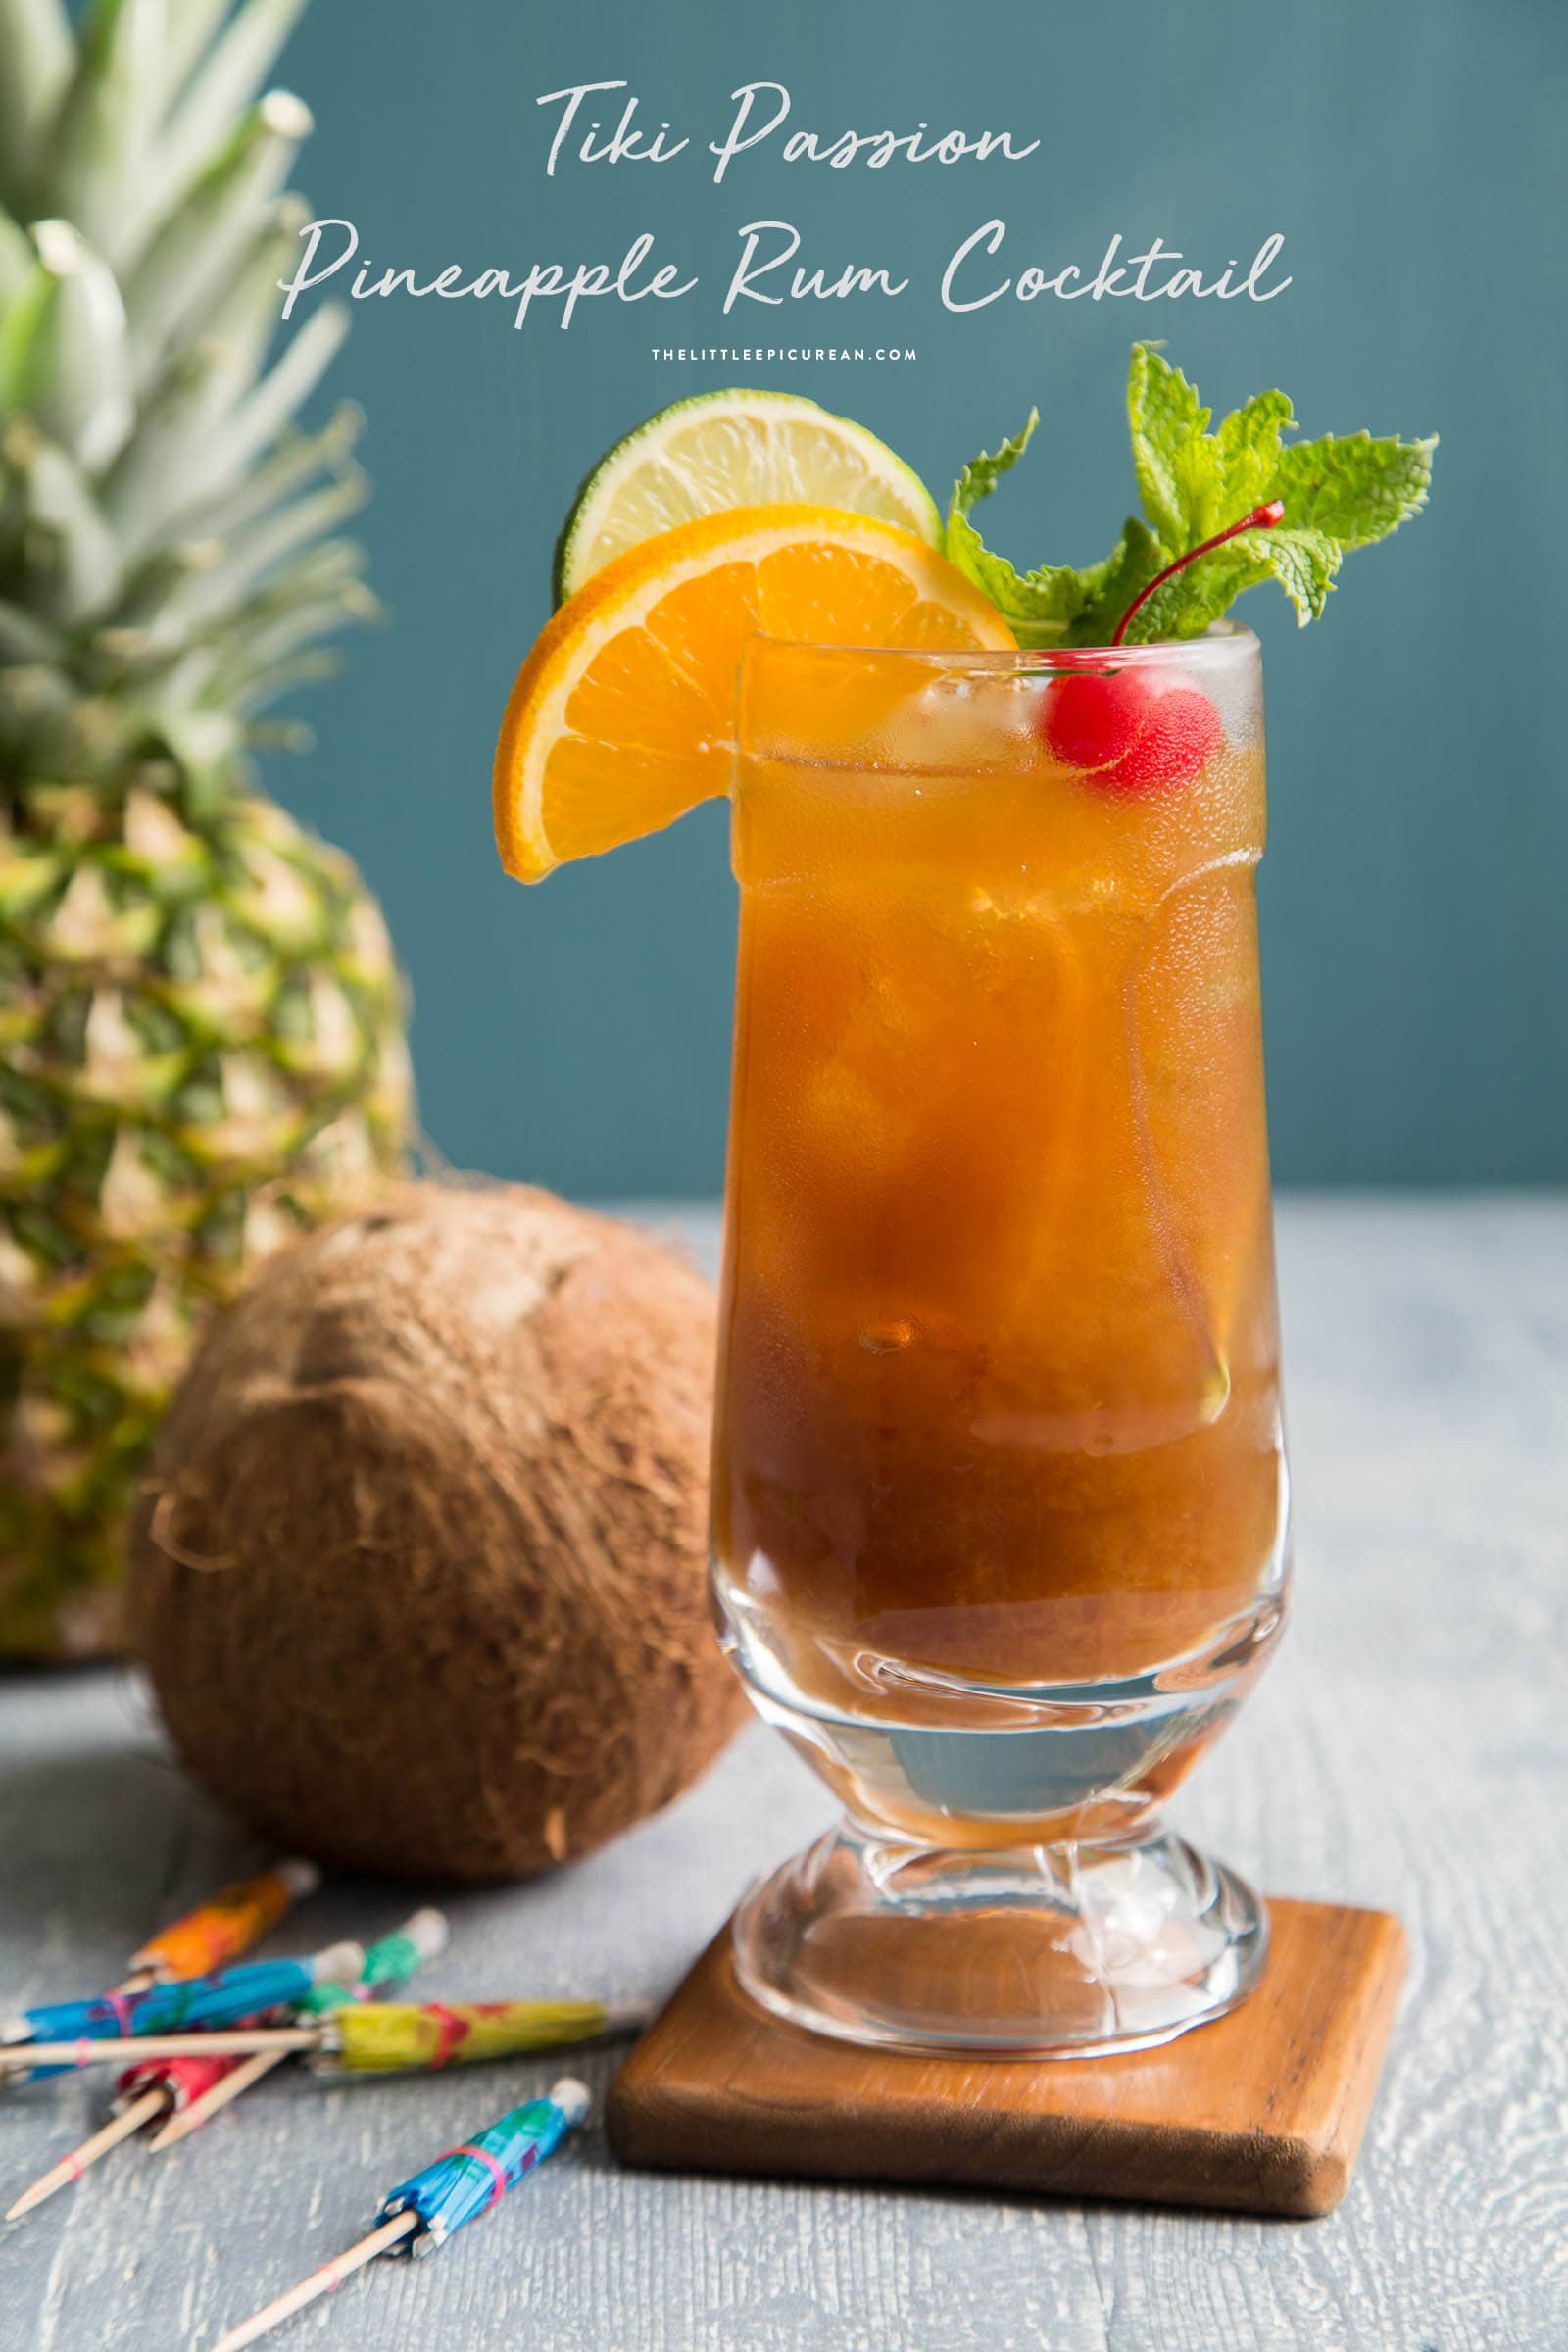 Tiki Passion Pineapple Rum Cocktail